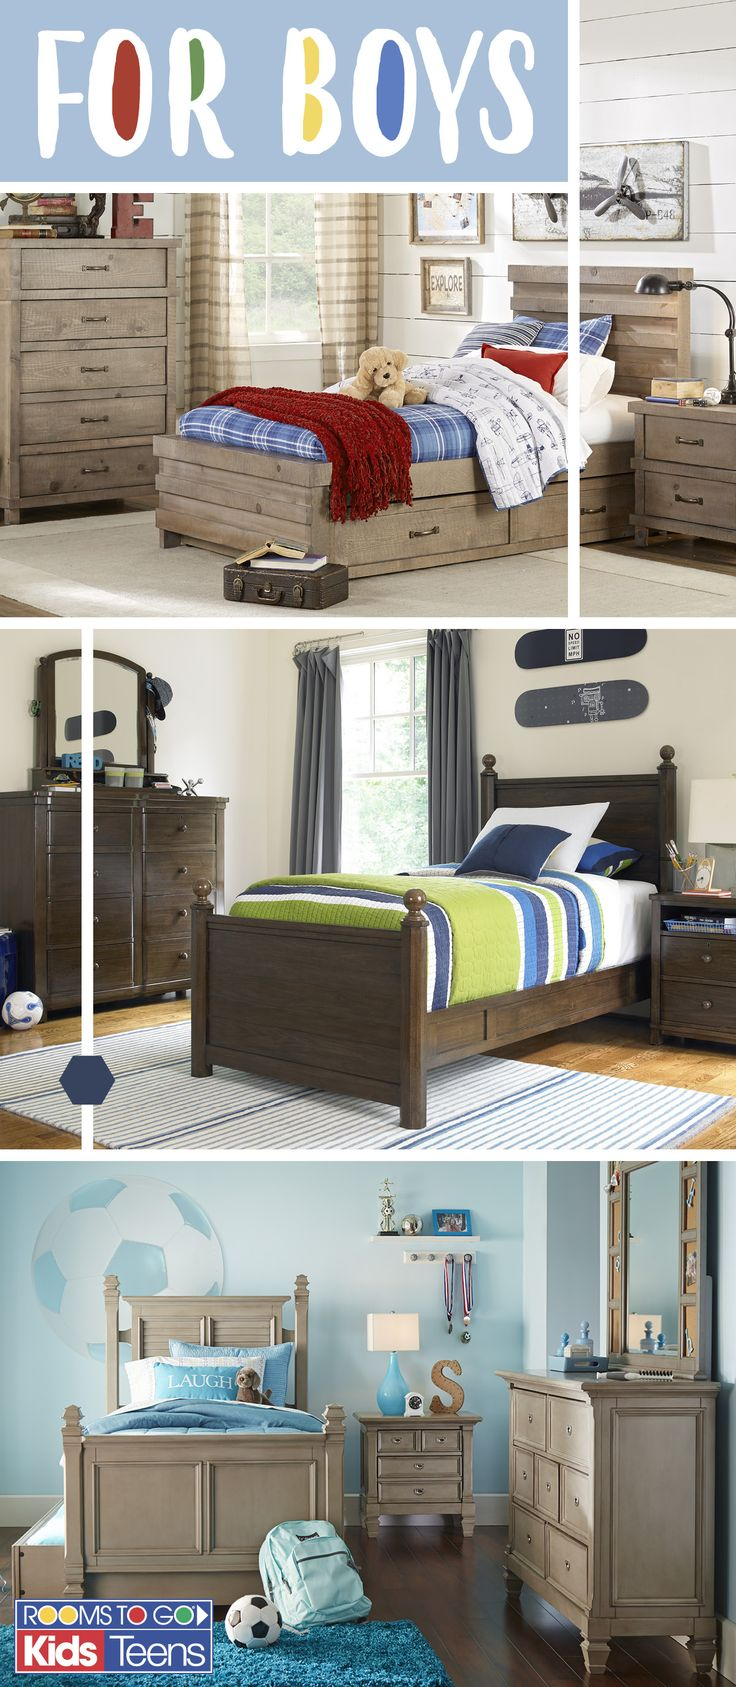 With decorator inspired room sets that come in a range of colors, styles and sizes, Rooms To Go Kids makes finding the perfect bed for your little boy or teen easy and fun! Visit Rooms To Go Kids now to see these cool boys' bedroom sets and more!